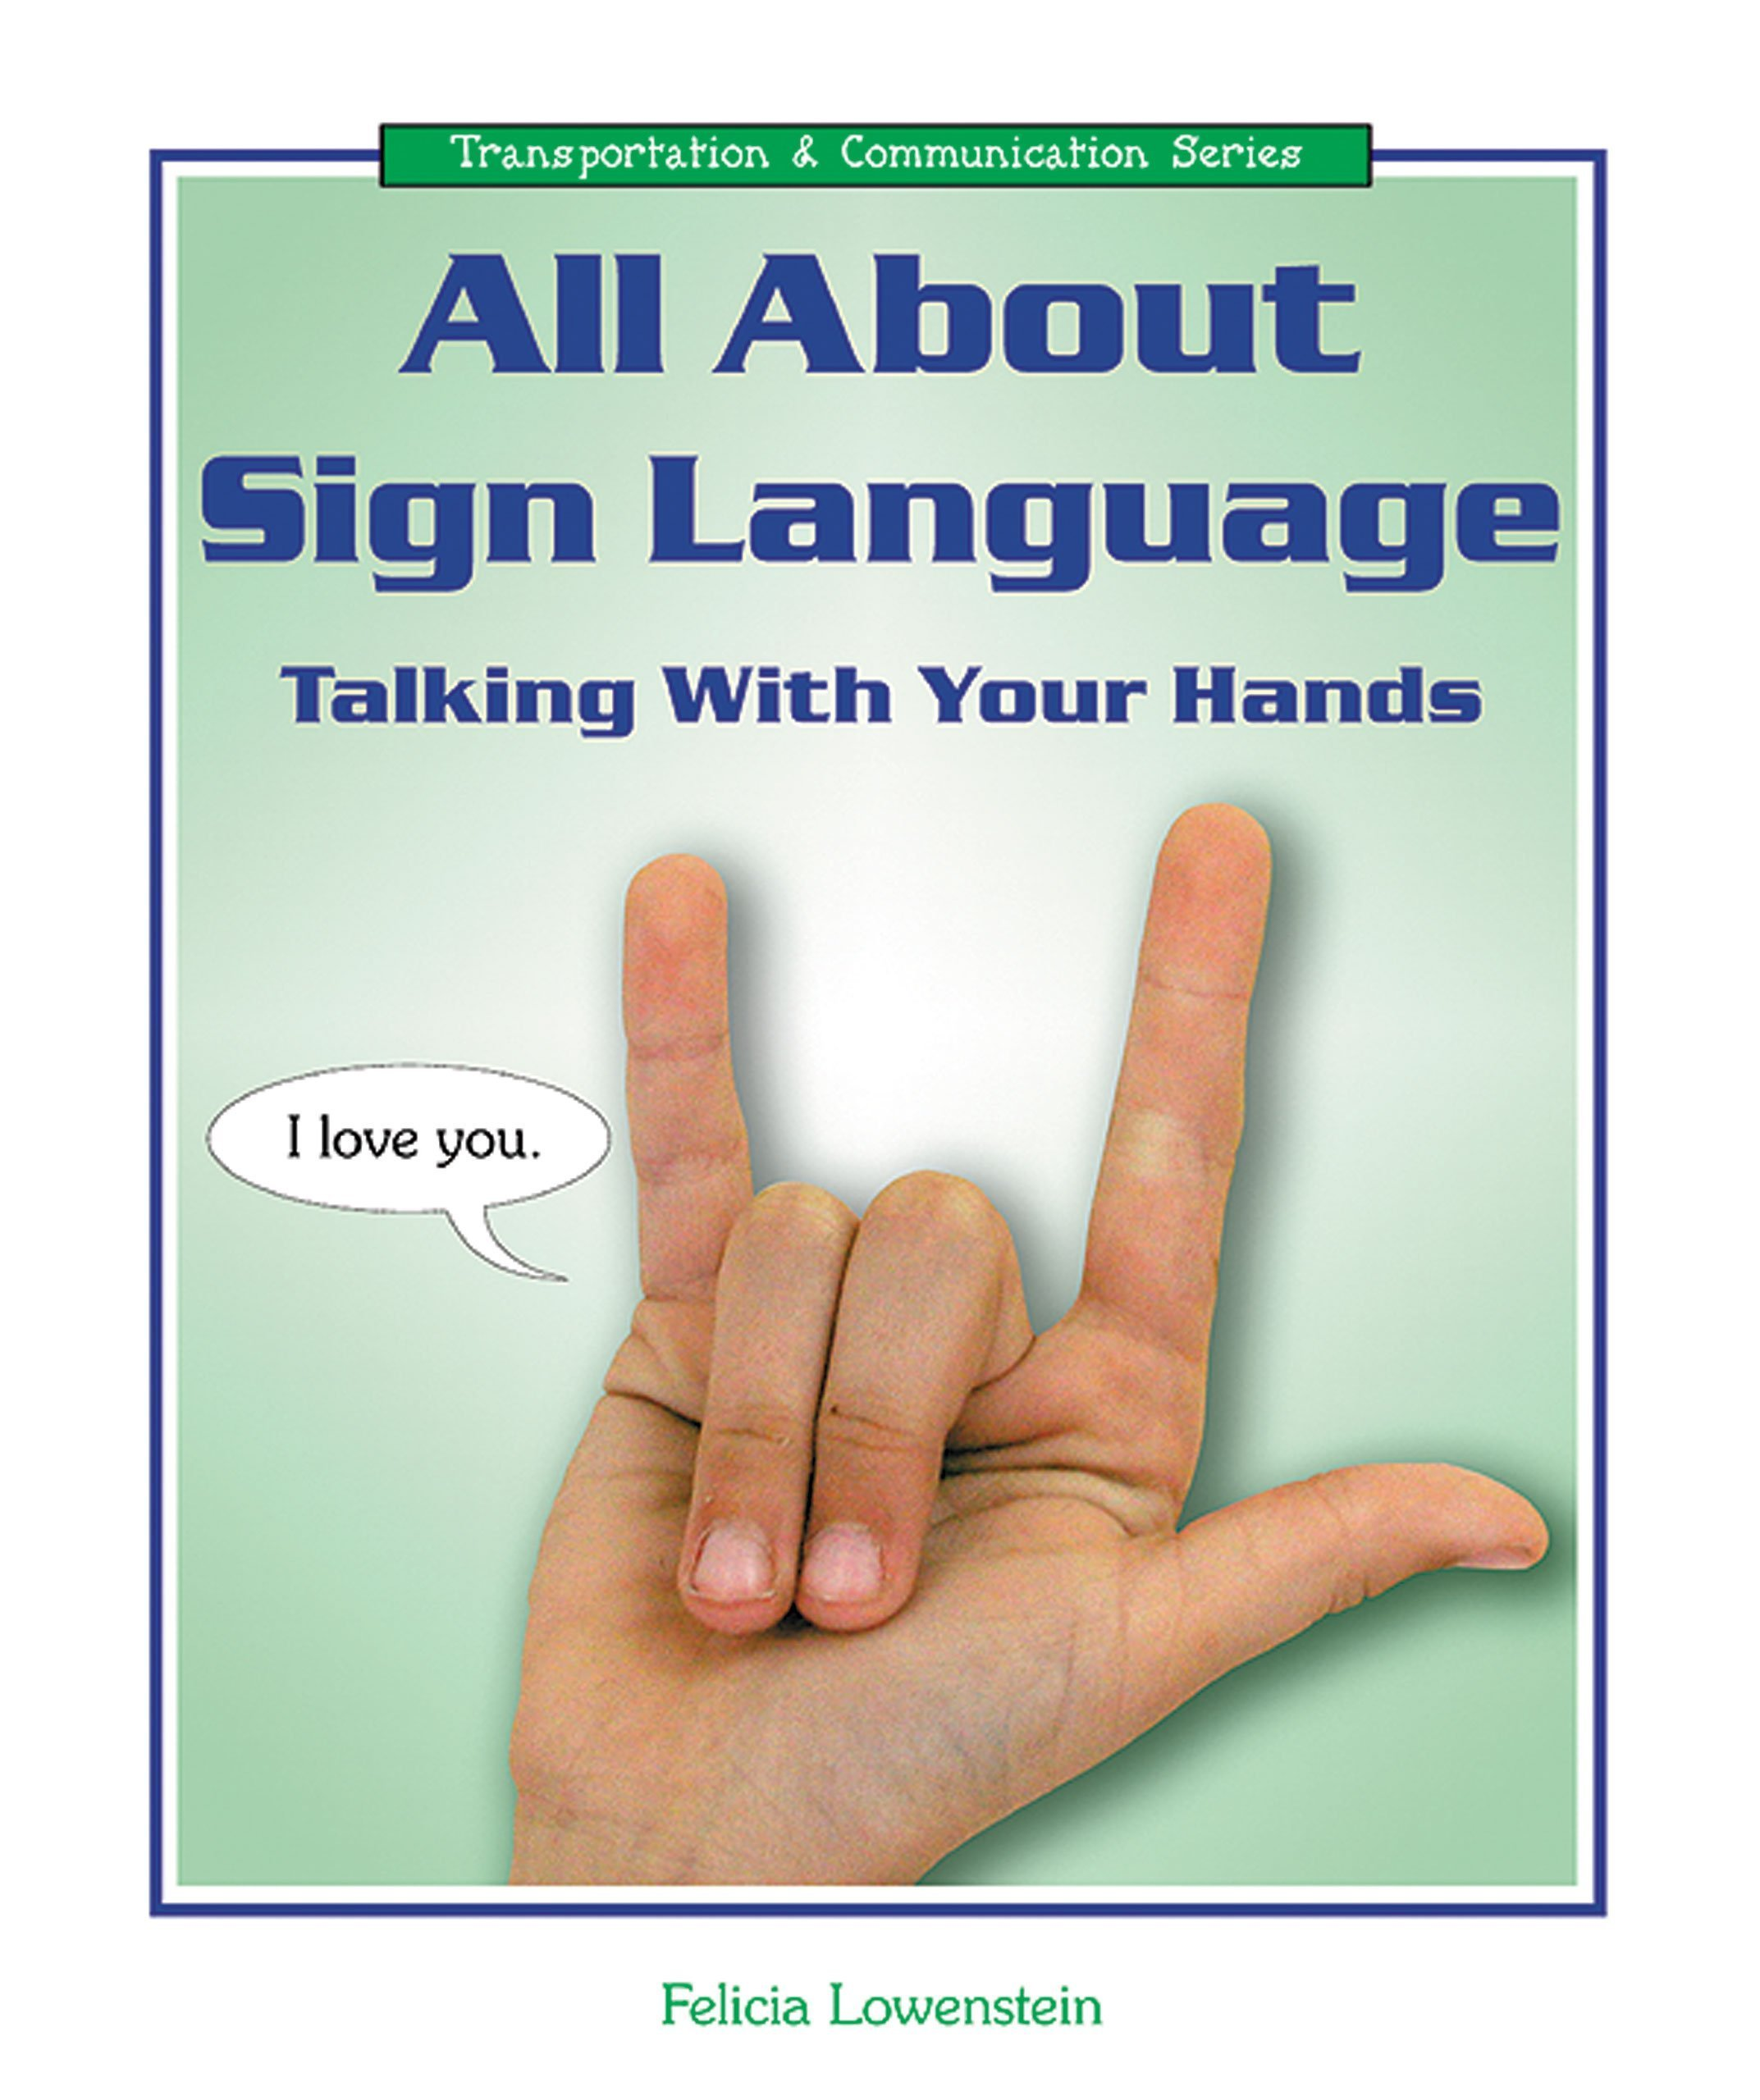 All About Sign Language: Talking With Your Hands (Transportation and Communication Series) PDF